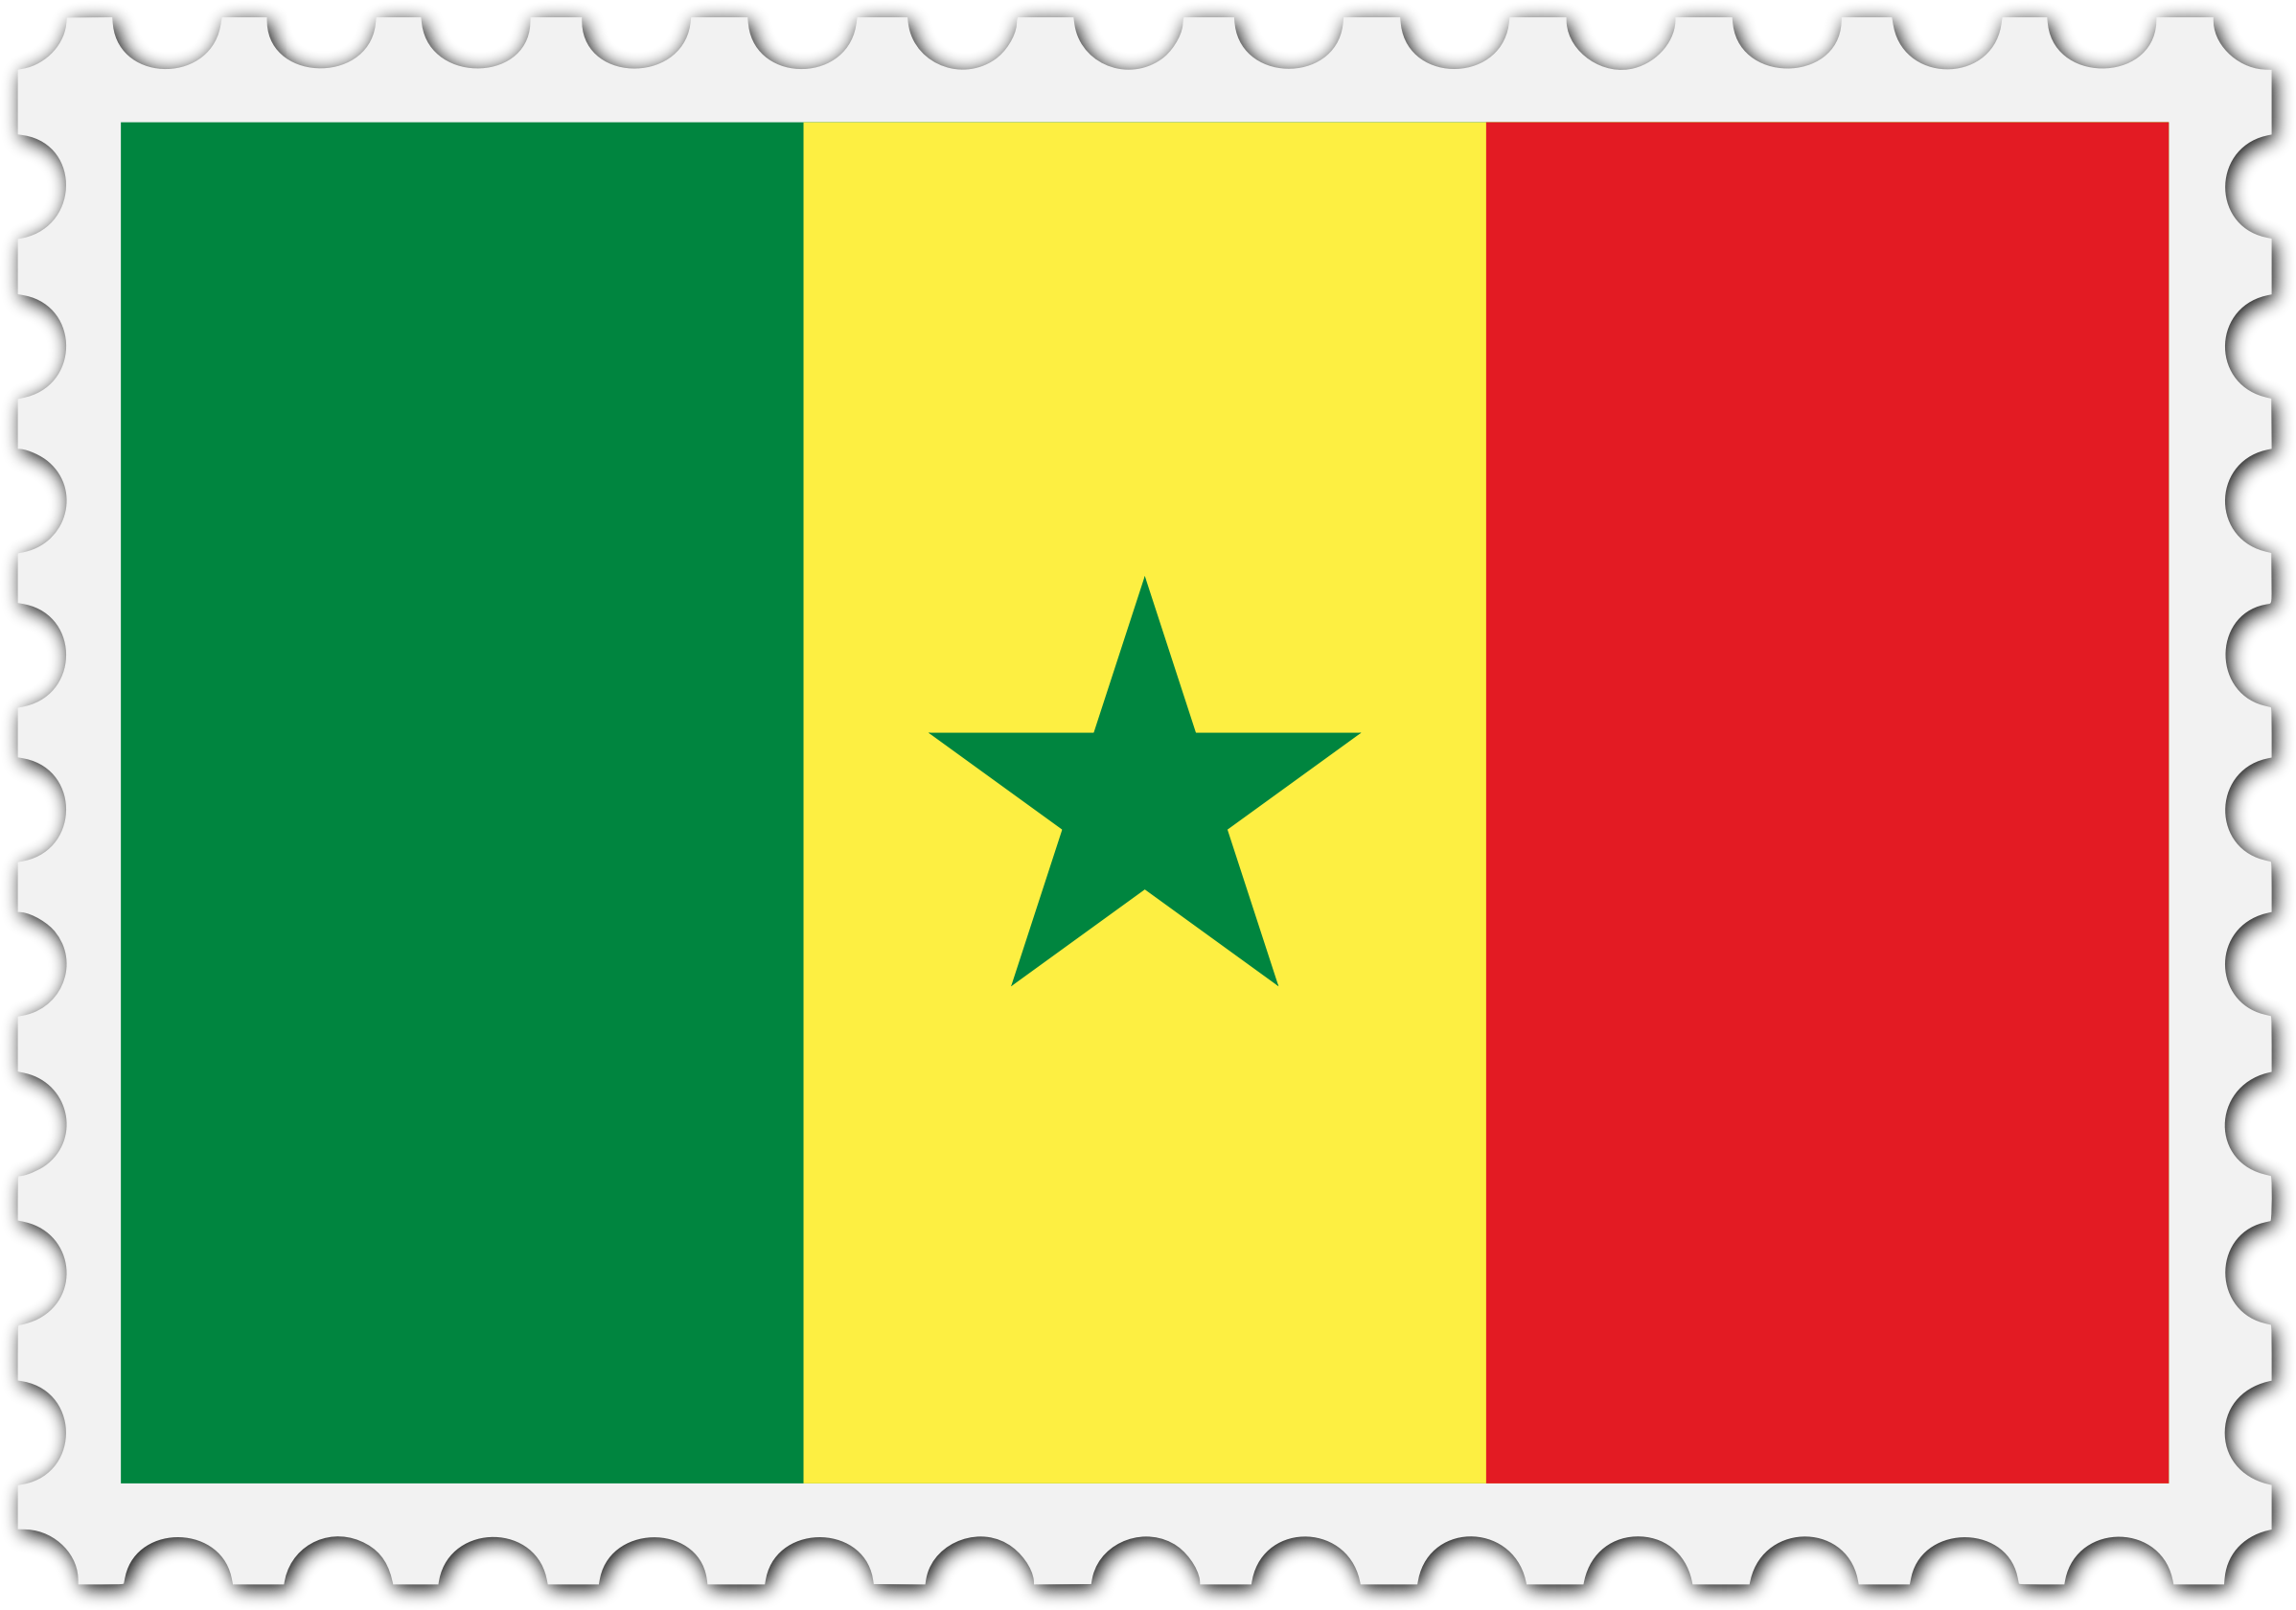 Senegal flag stamp by Firkin